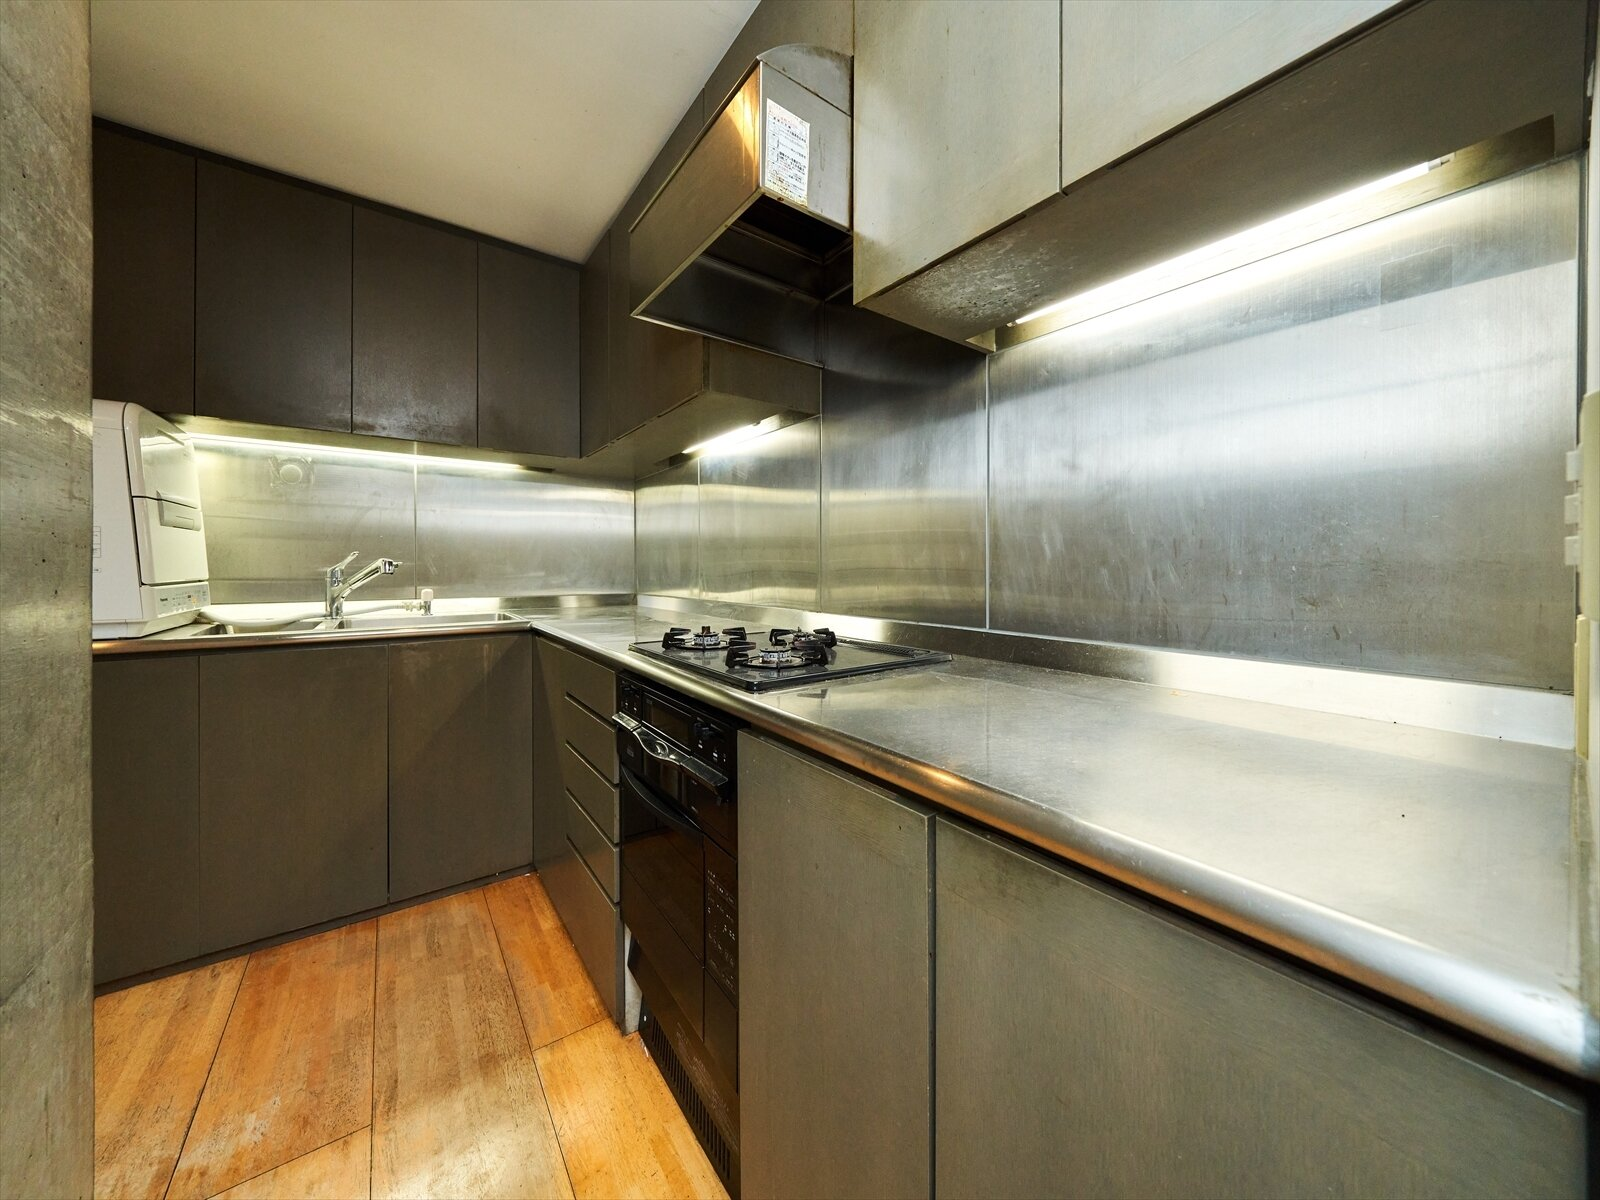 The kitchen in one unit features stainless steel countertops and wide-plank hardwood floors.  Photo 6 of 11 in Tadao Ando's Curved Concrete Ito House Asks $7M in Tokyo